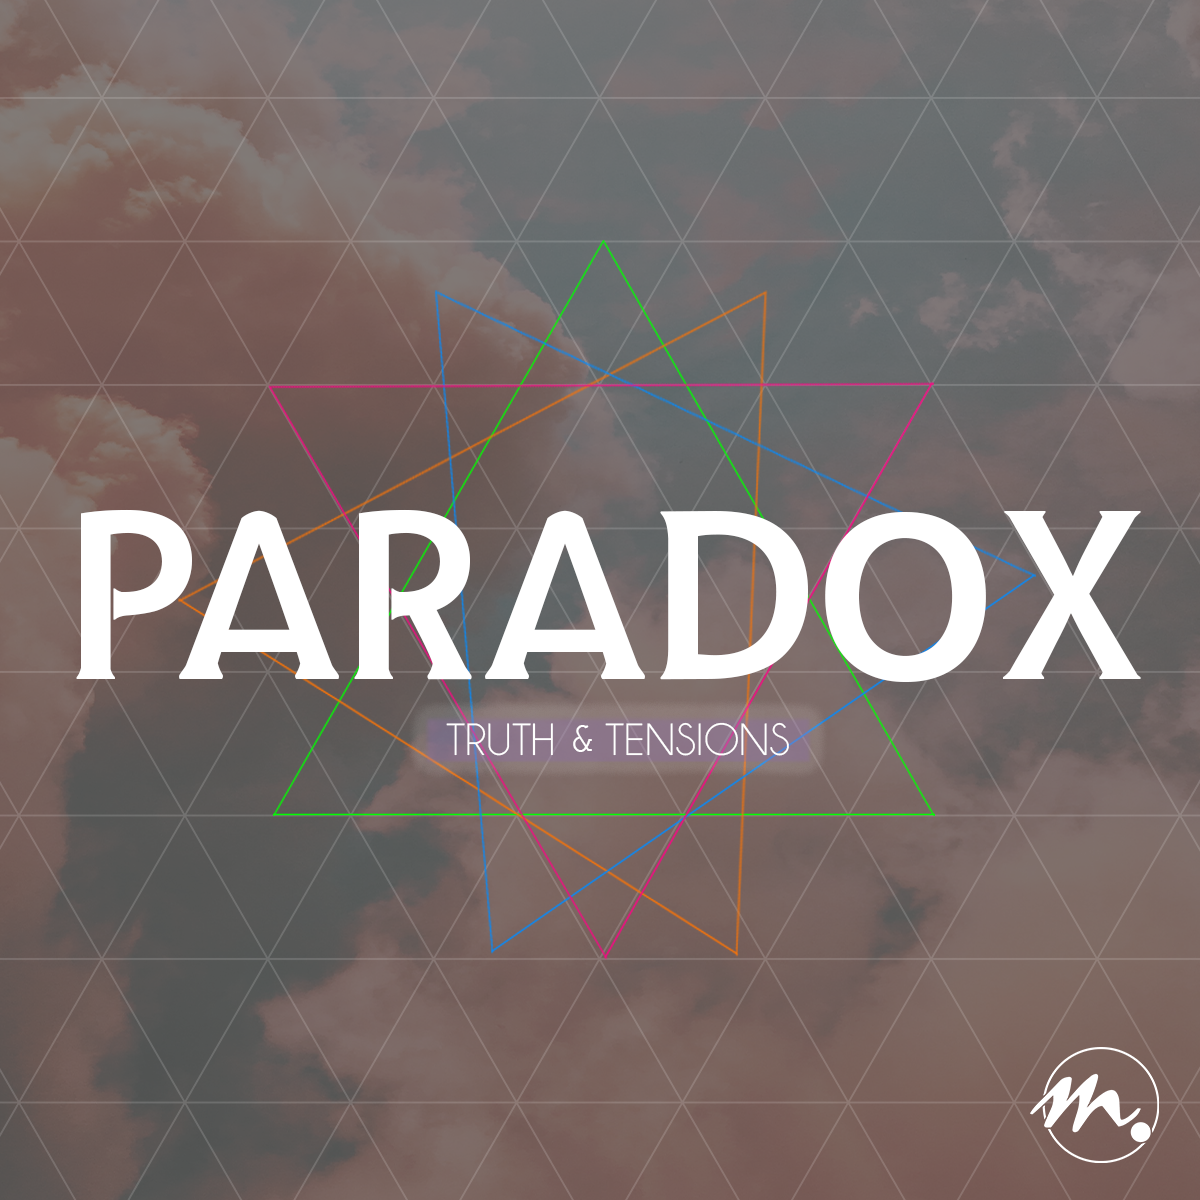 Paradox: Truth and Tensions